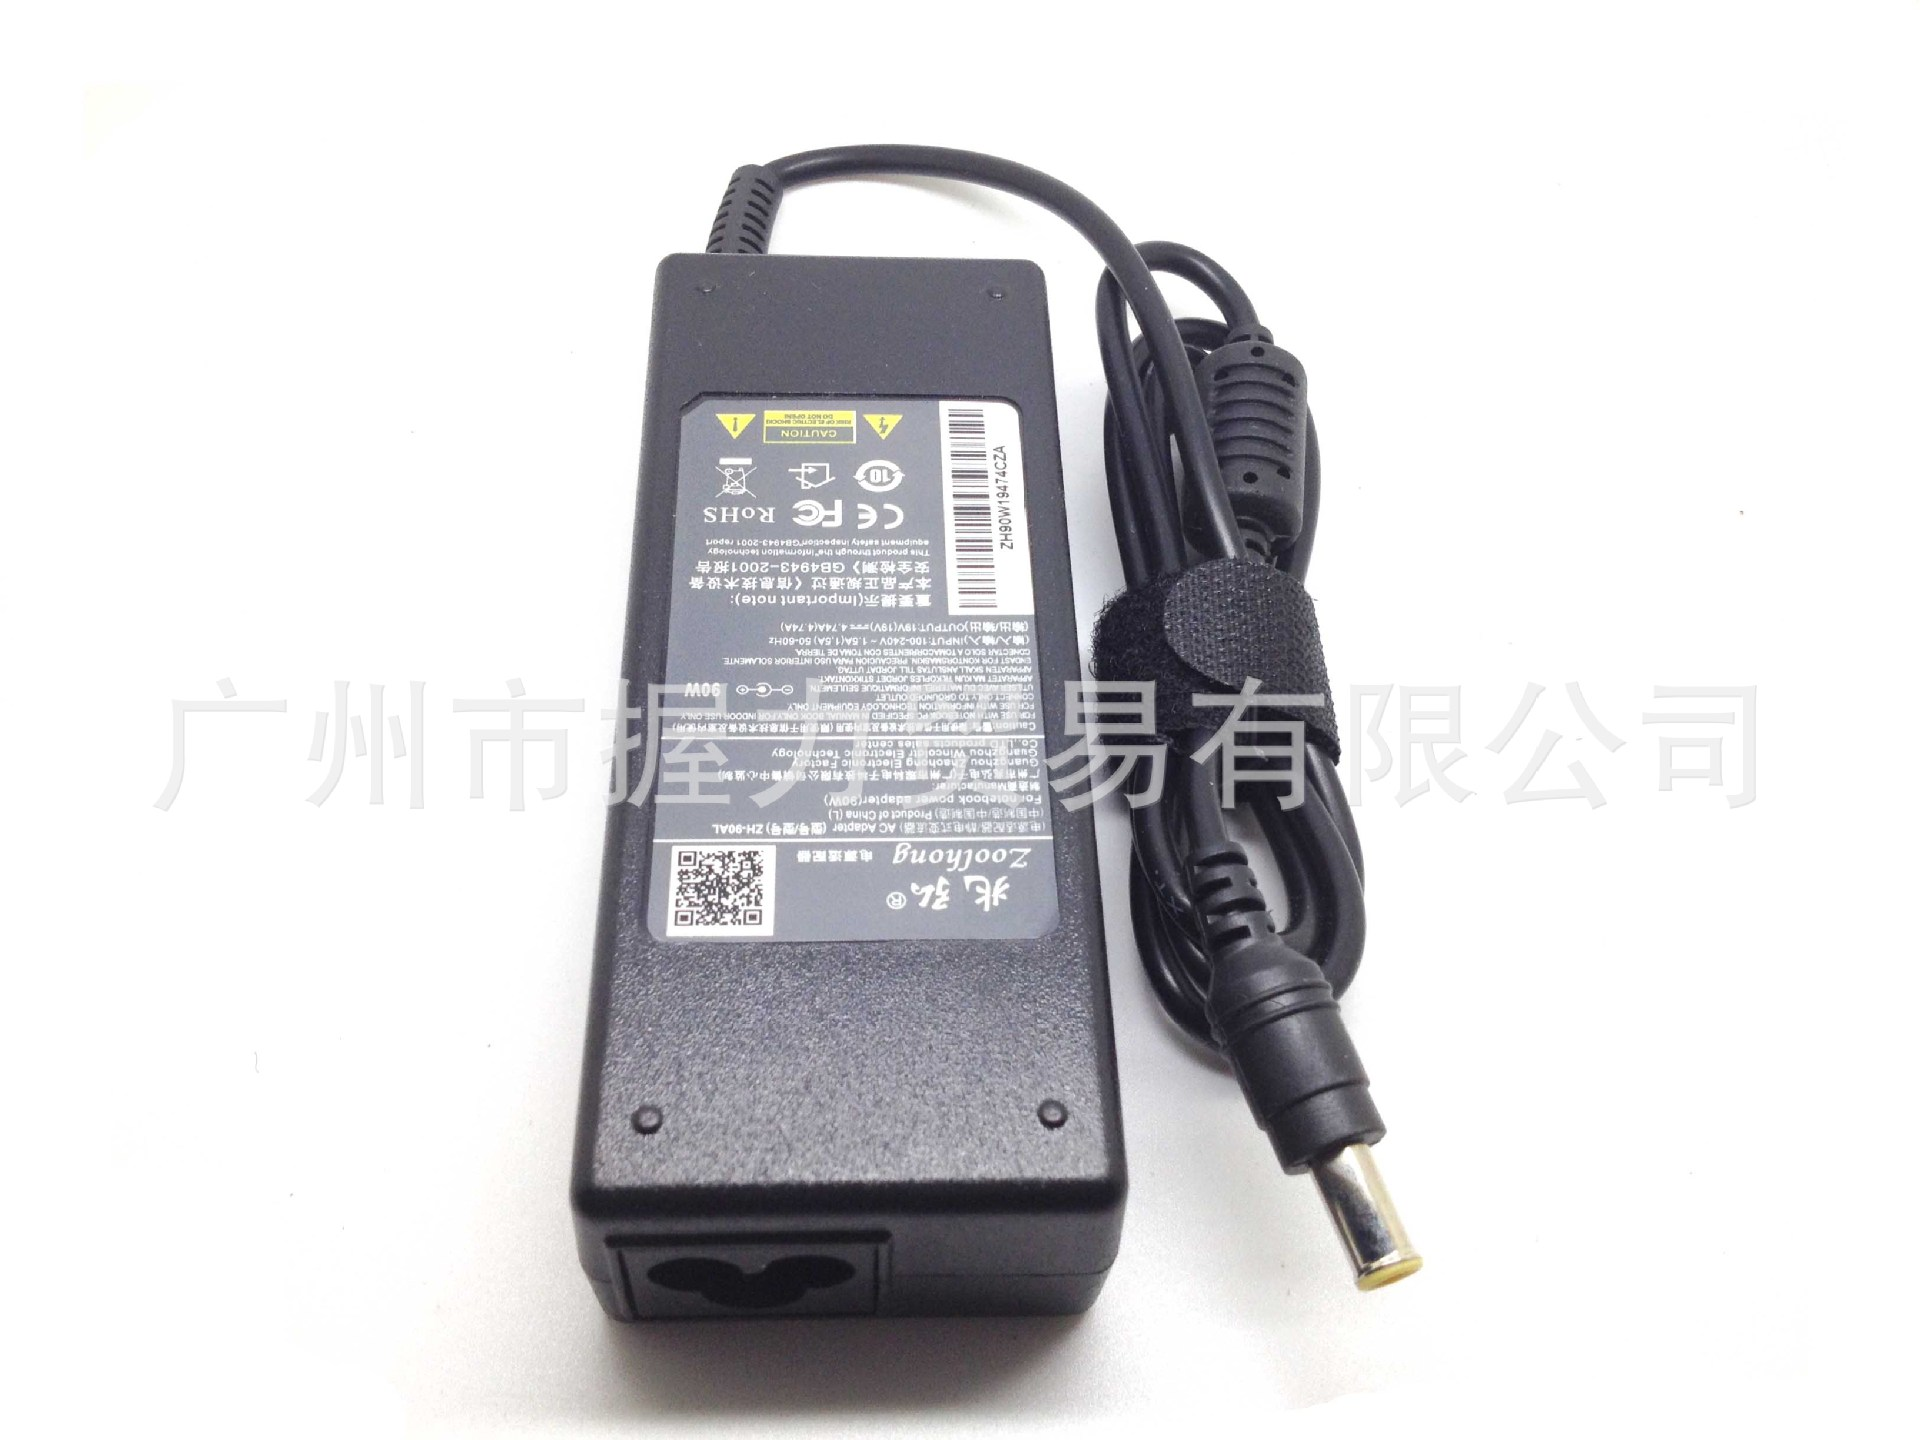 19.5V 4.7A 90W Laptop Ac Power Adapter Oplader Voor Vaio Vgn-Axe Vgn-Bx Vgn-C Vgn-Cr Vgp Vpc Vgc 6.0Mm * 4.4Mm